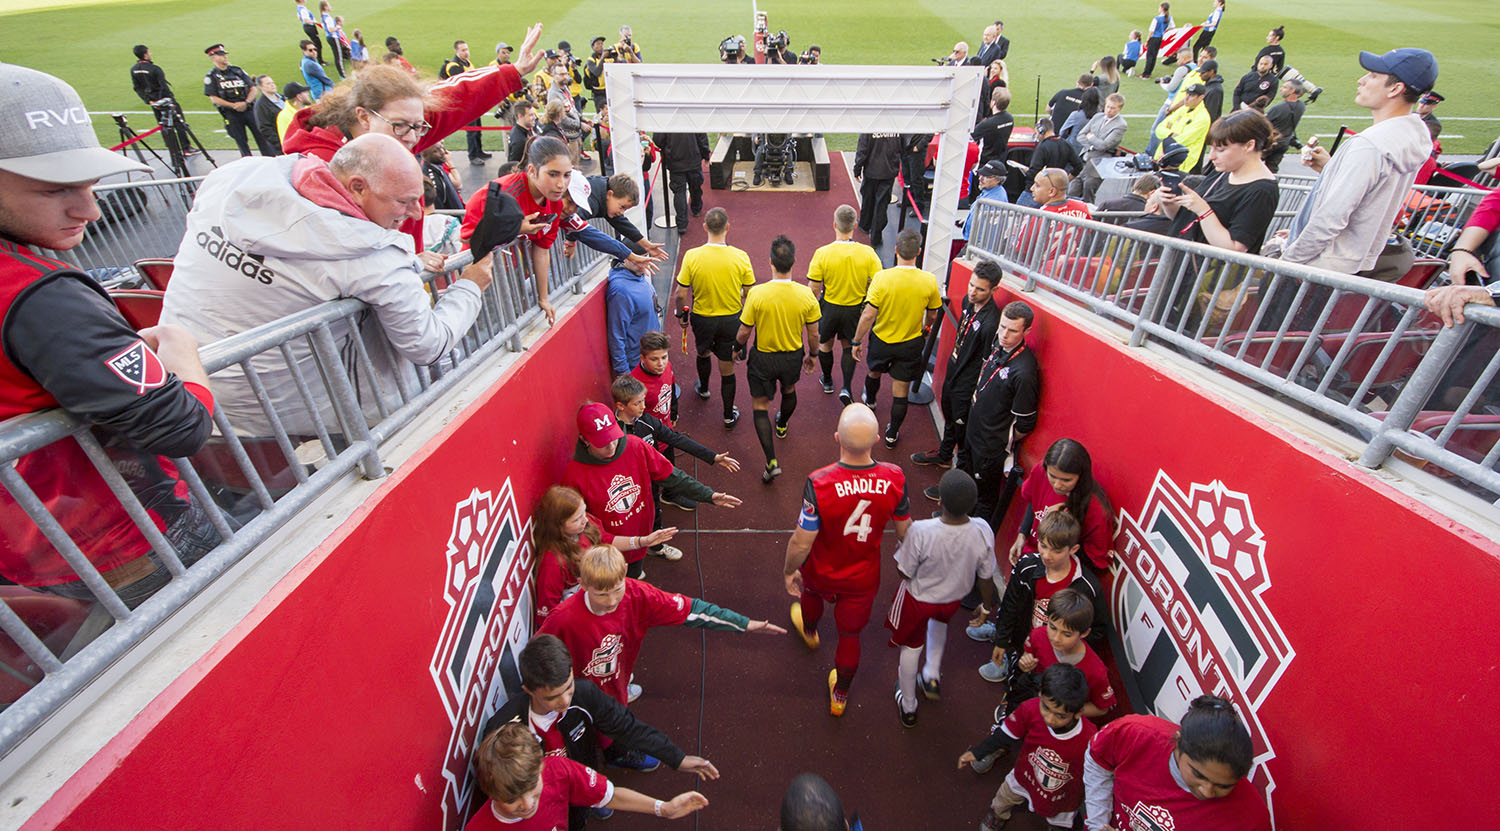 Michael Bradley comes out of the tunnel greeted by fans during the Canadian Championship in 2017.Image by Dennis Marciniak of denMAR Media.